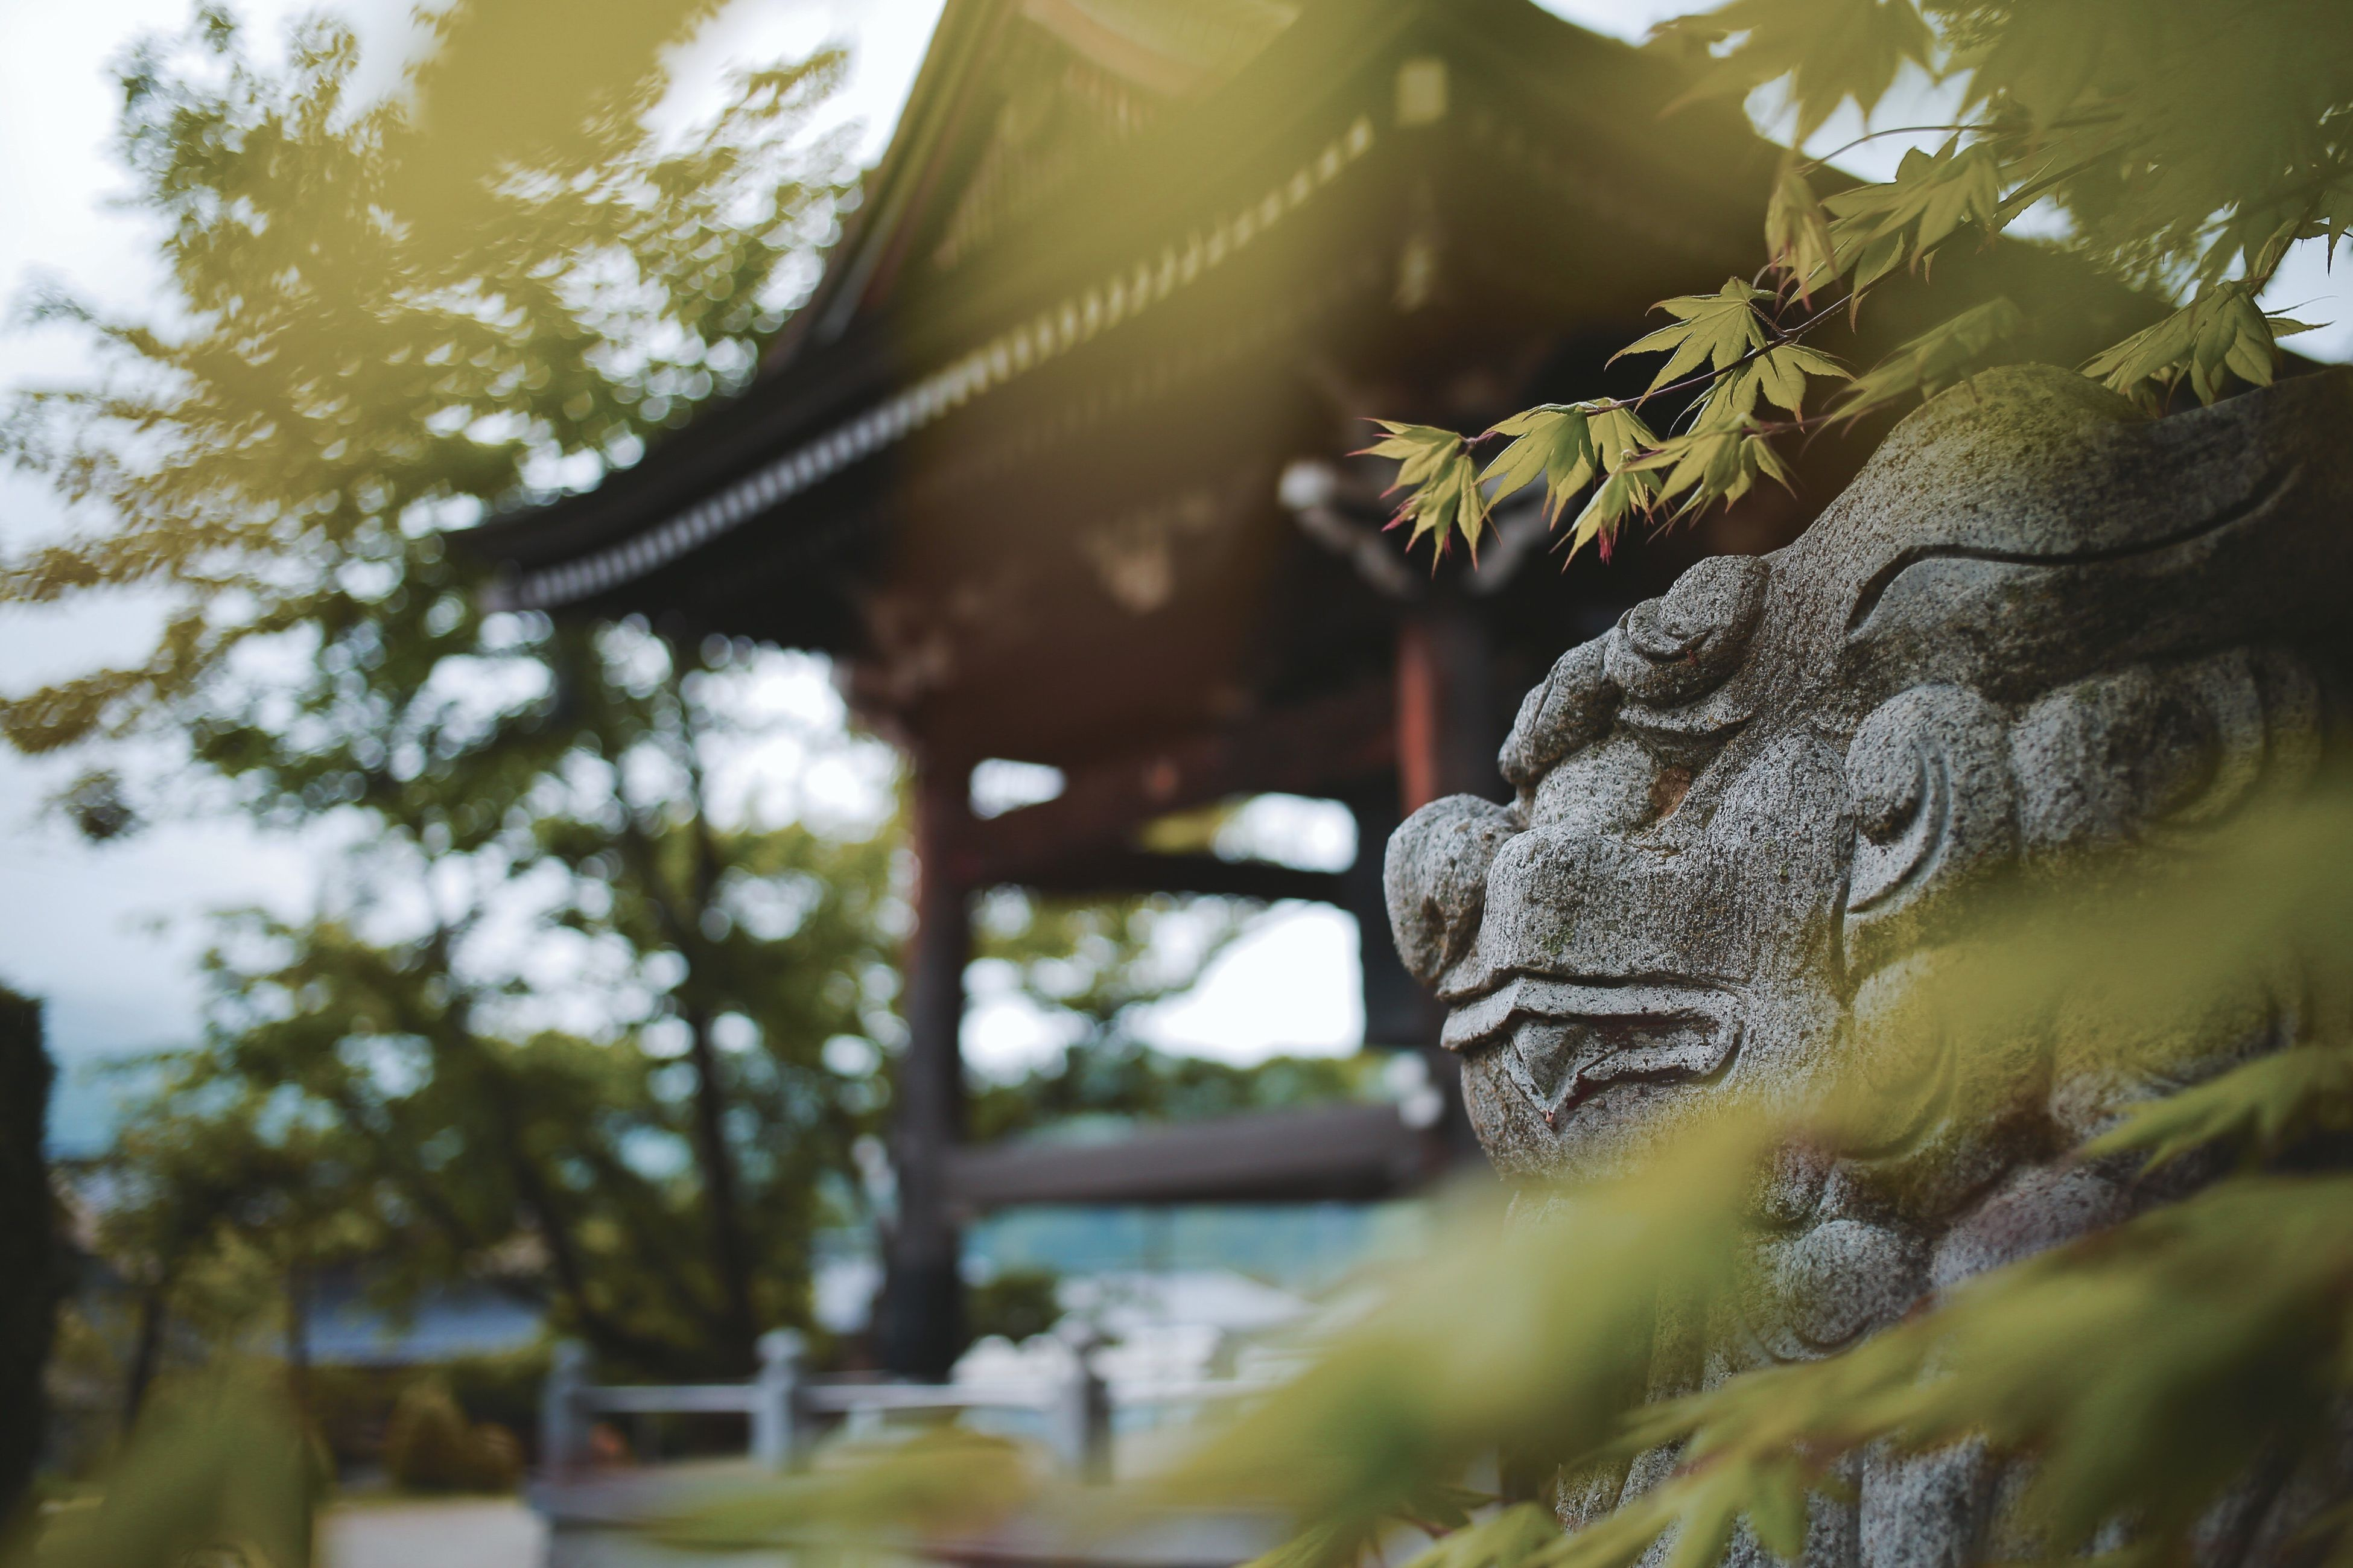 spirituality, religion, statue, no people, selective focus, sculpture, tree, close-up, day, outdoors, low angle view, place of worship, green color, moss, nature, architecture, beauty in nature, sky